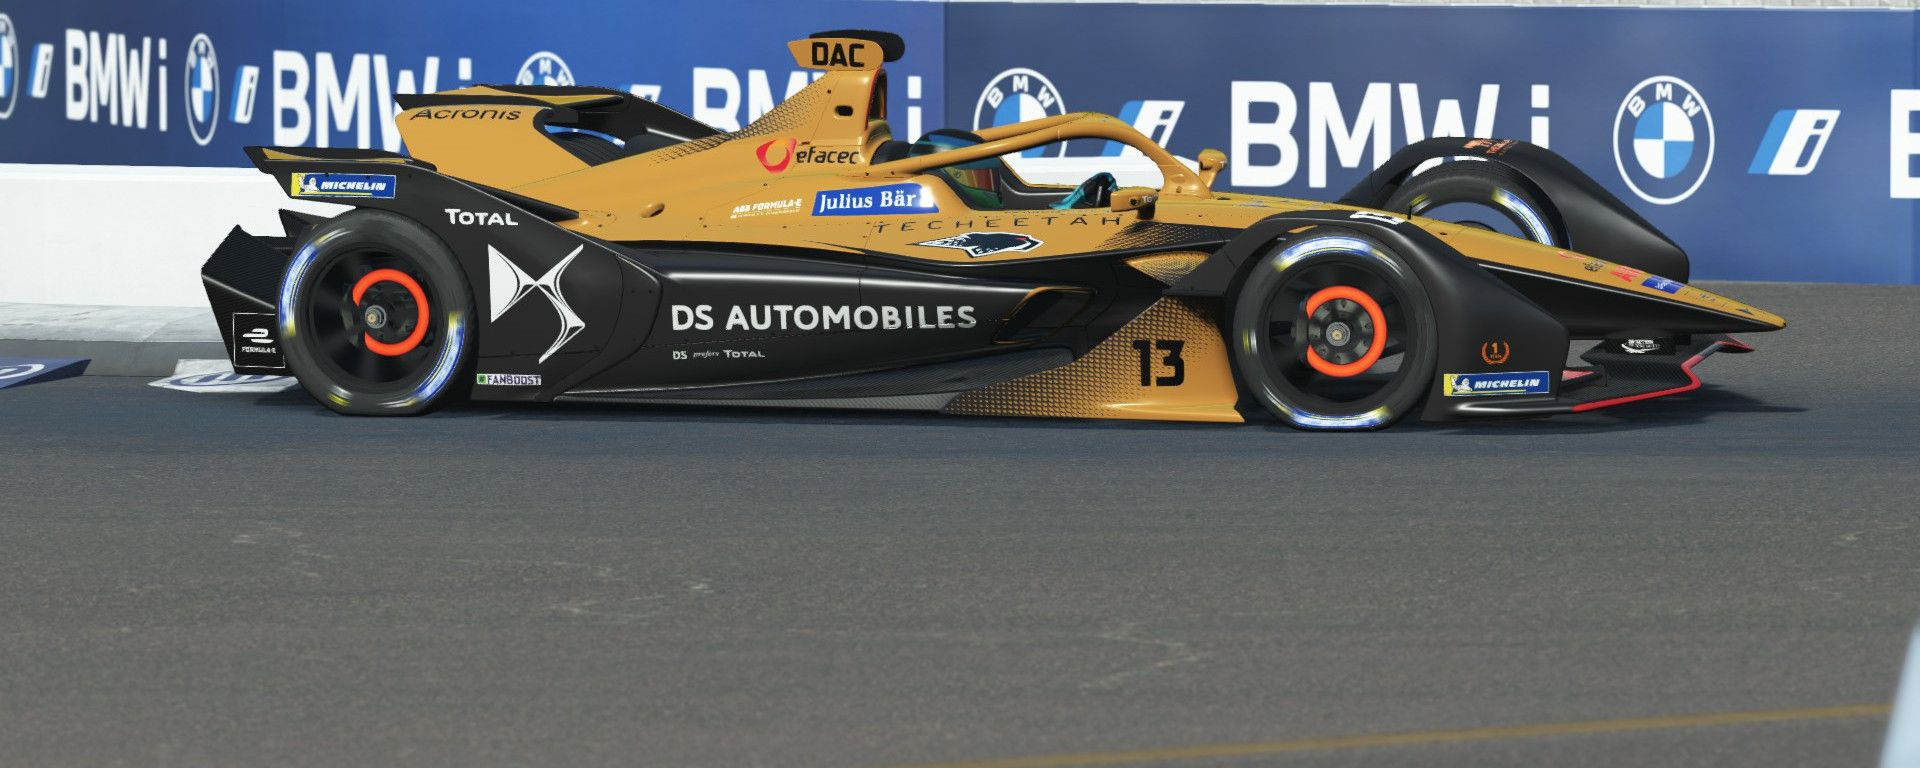 Formula E Race at Home Challenge 2020: Antonio Felix Da Costa (DS Techeetah)